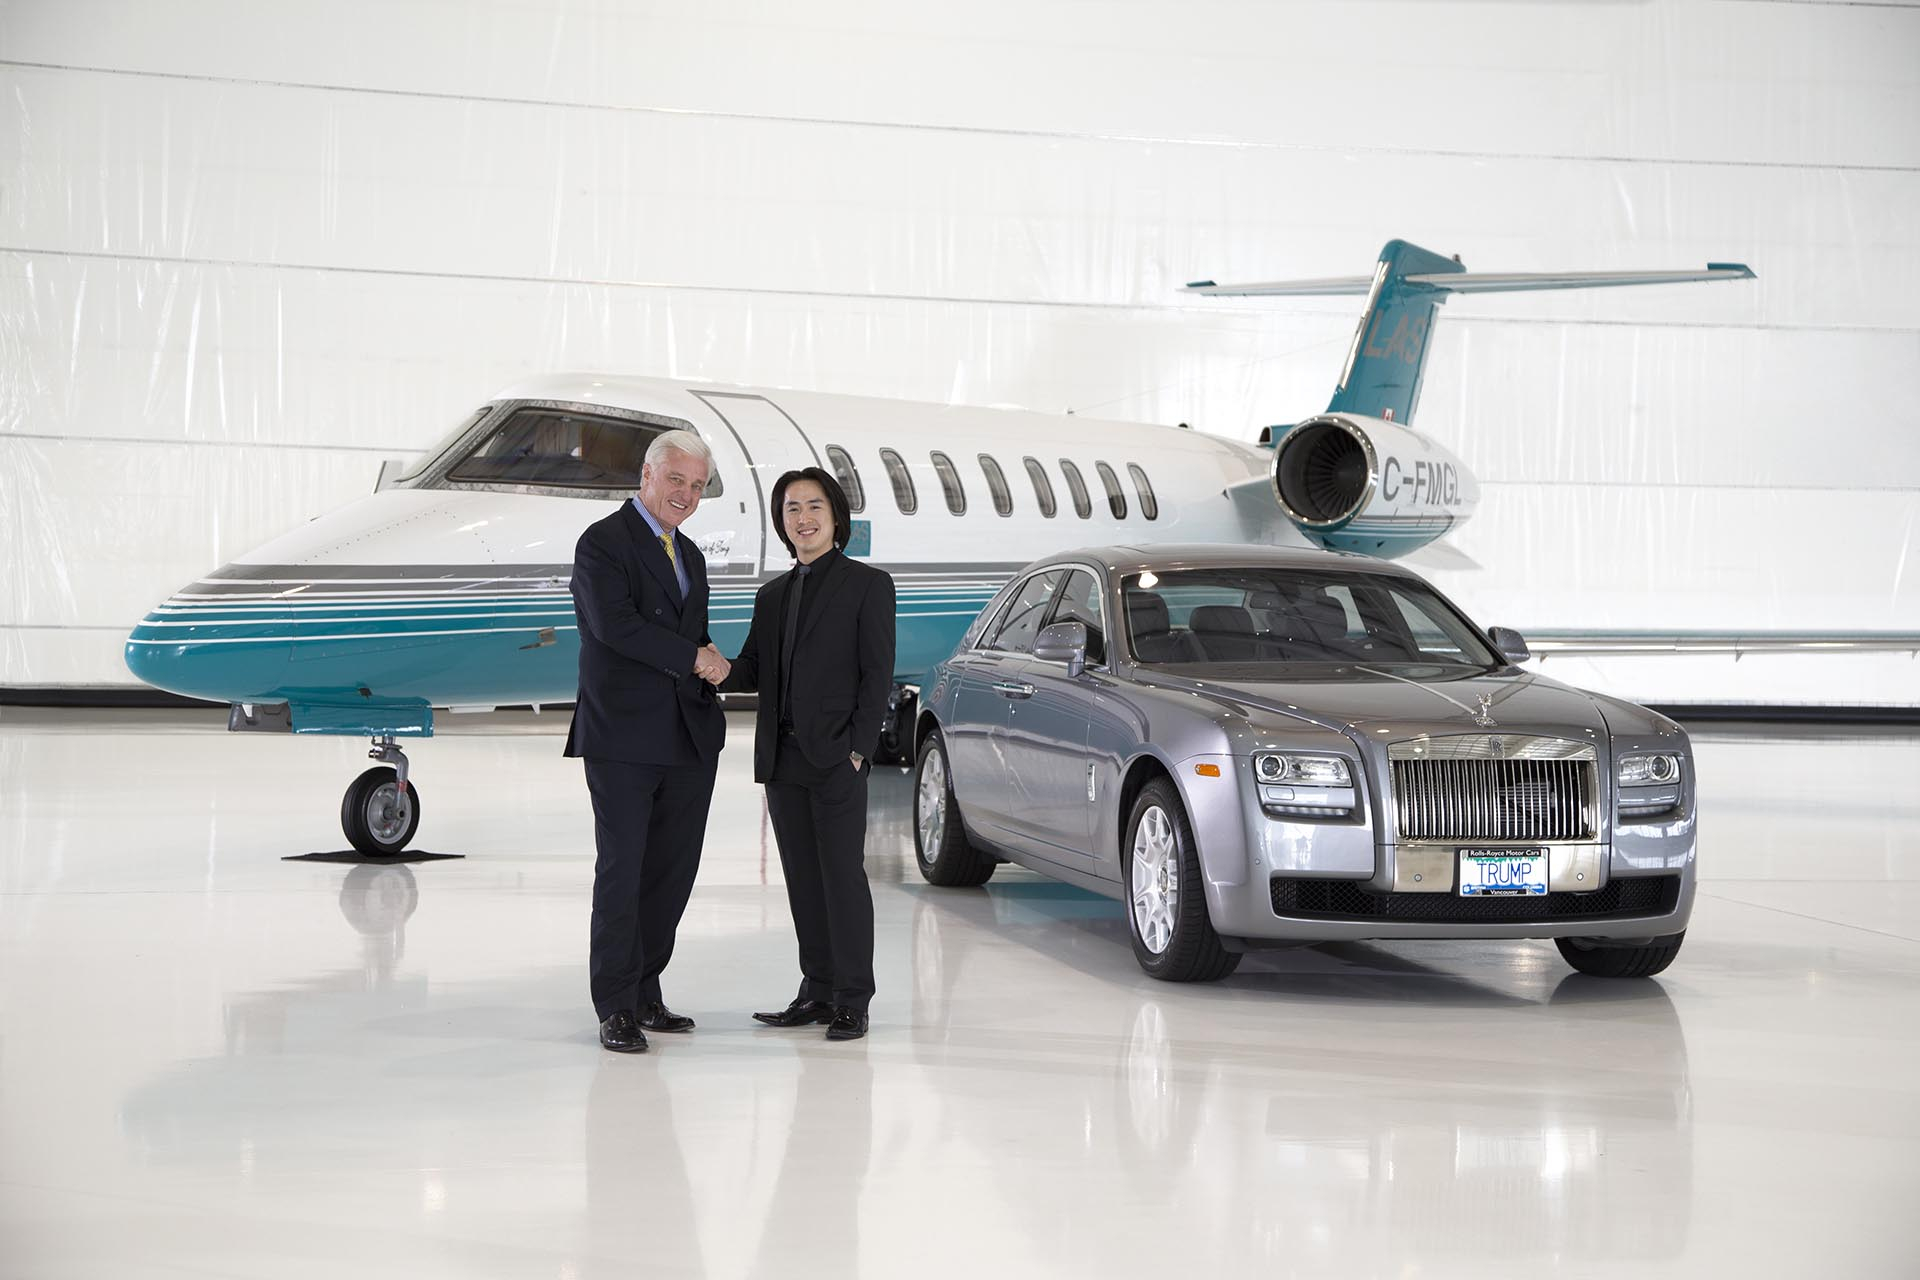 A Partnership London Air Services Rolls Royce Motor Cars and TIHT